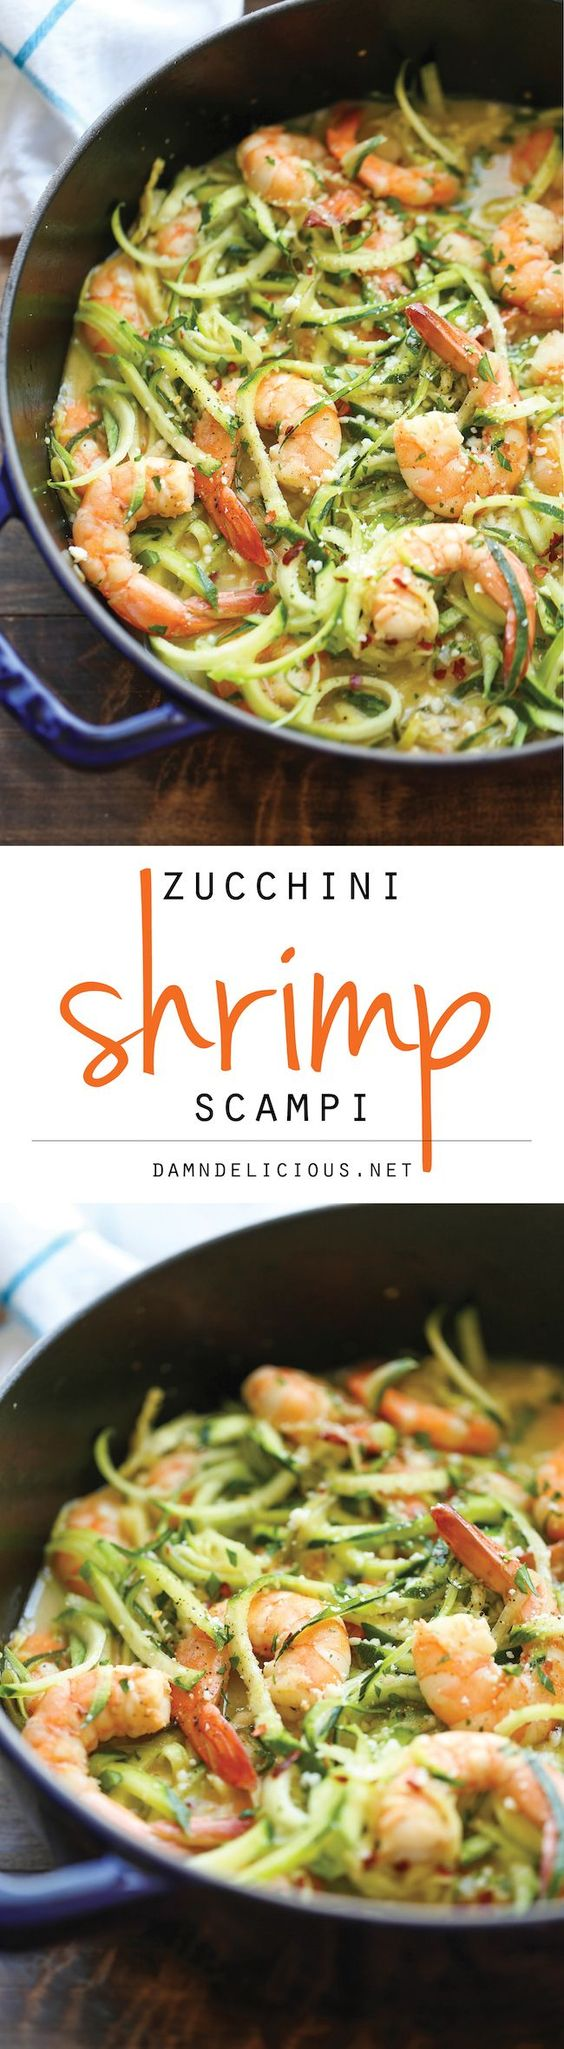 Zucchini Shrimp Scampi - Traditional shrimp scampi made into a low-carb dish with zucchini noodles. It's unbelievably easy, quick and healthy! 214.3 calories.